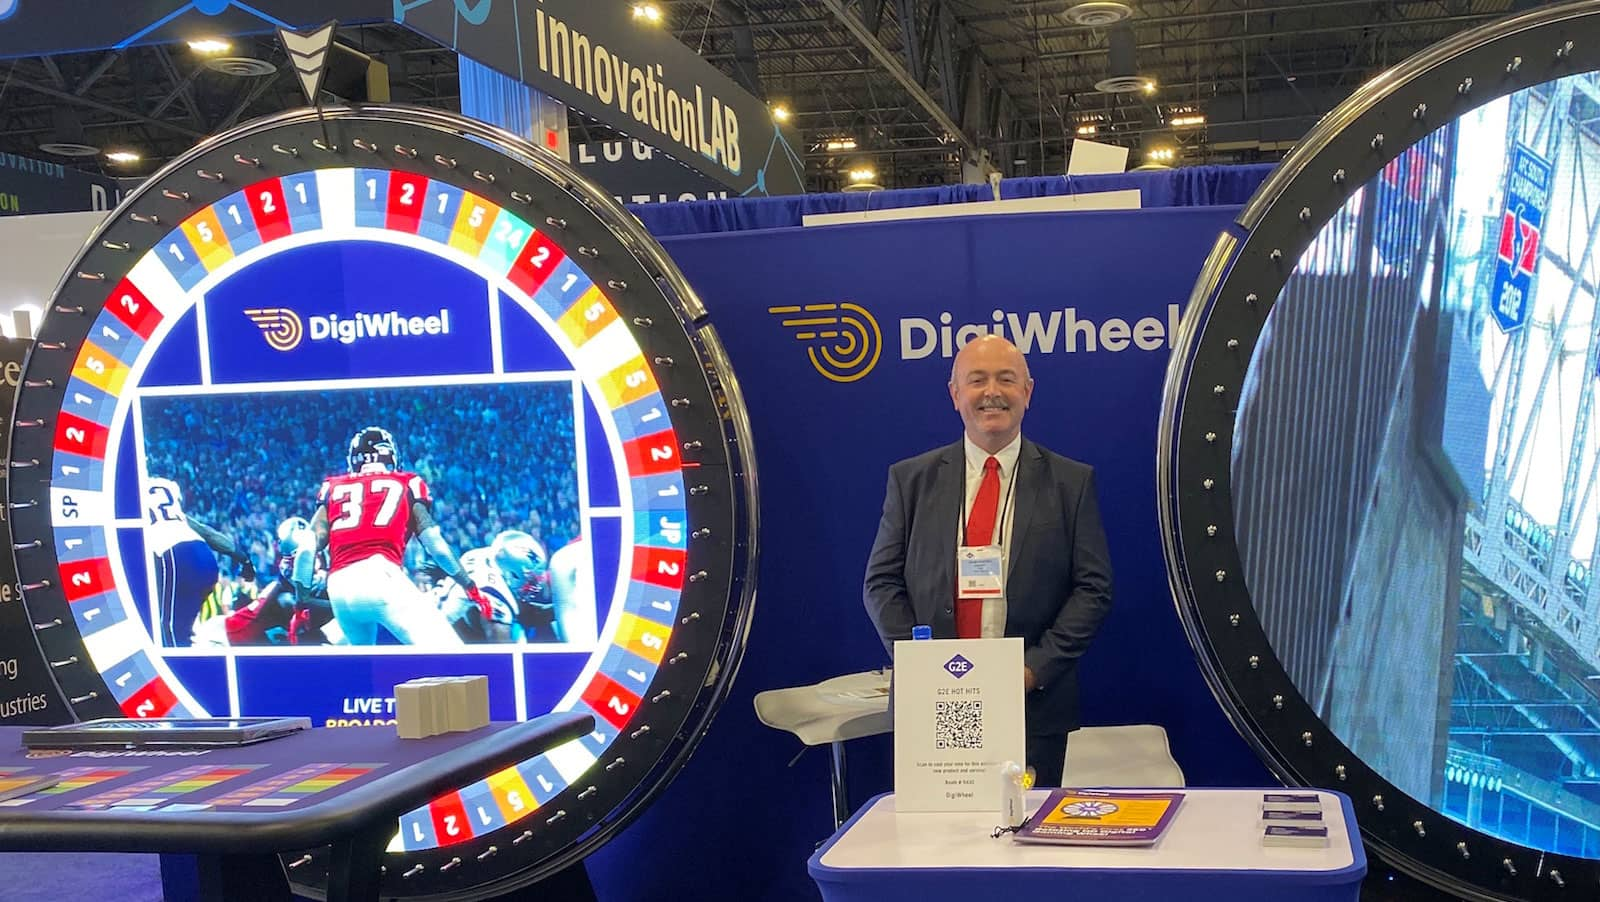 DigiWheel set to redefine the gaming entertainment experience with official launch at ICE London